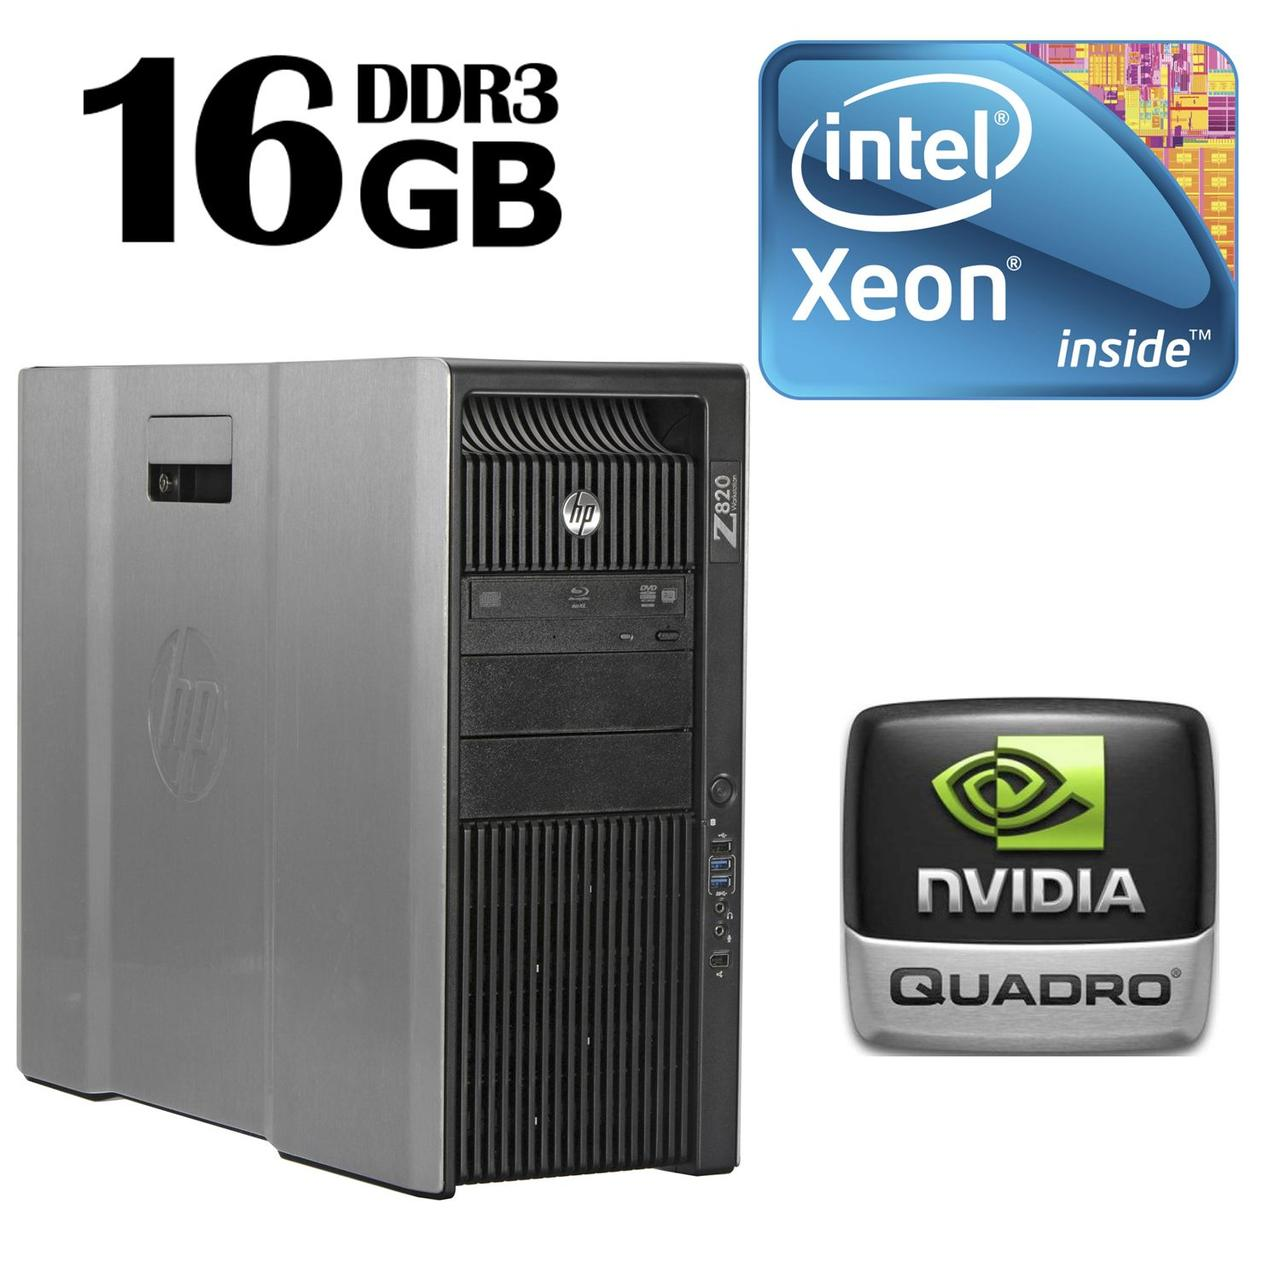 HP Z820 Workstation Tower / 2 процессора Intel® Xeon® E5-2609 (4 ядра по 2.40 GHz) / 16 GB DDR3 ECC / 300 GB